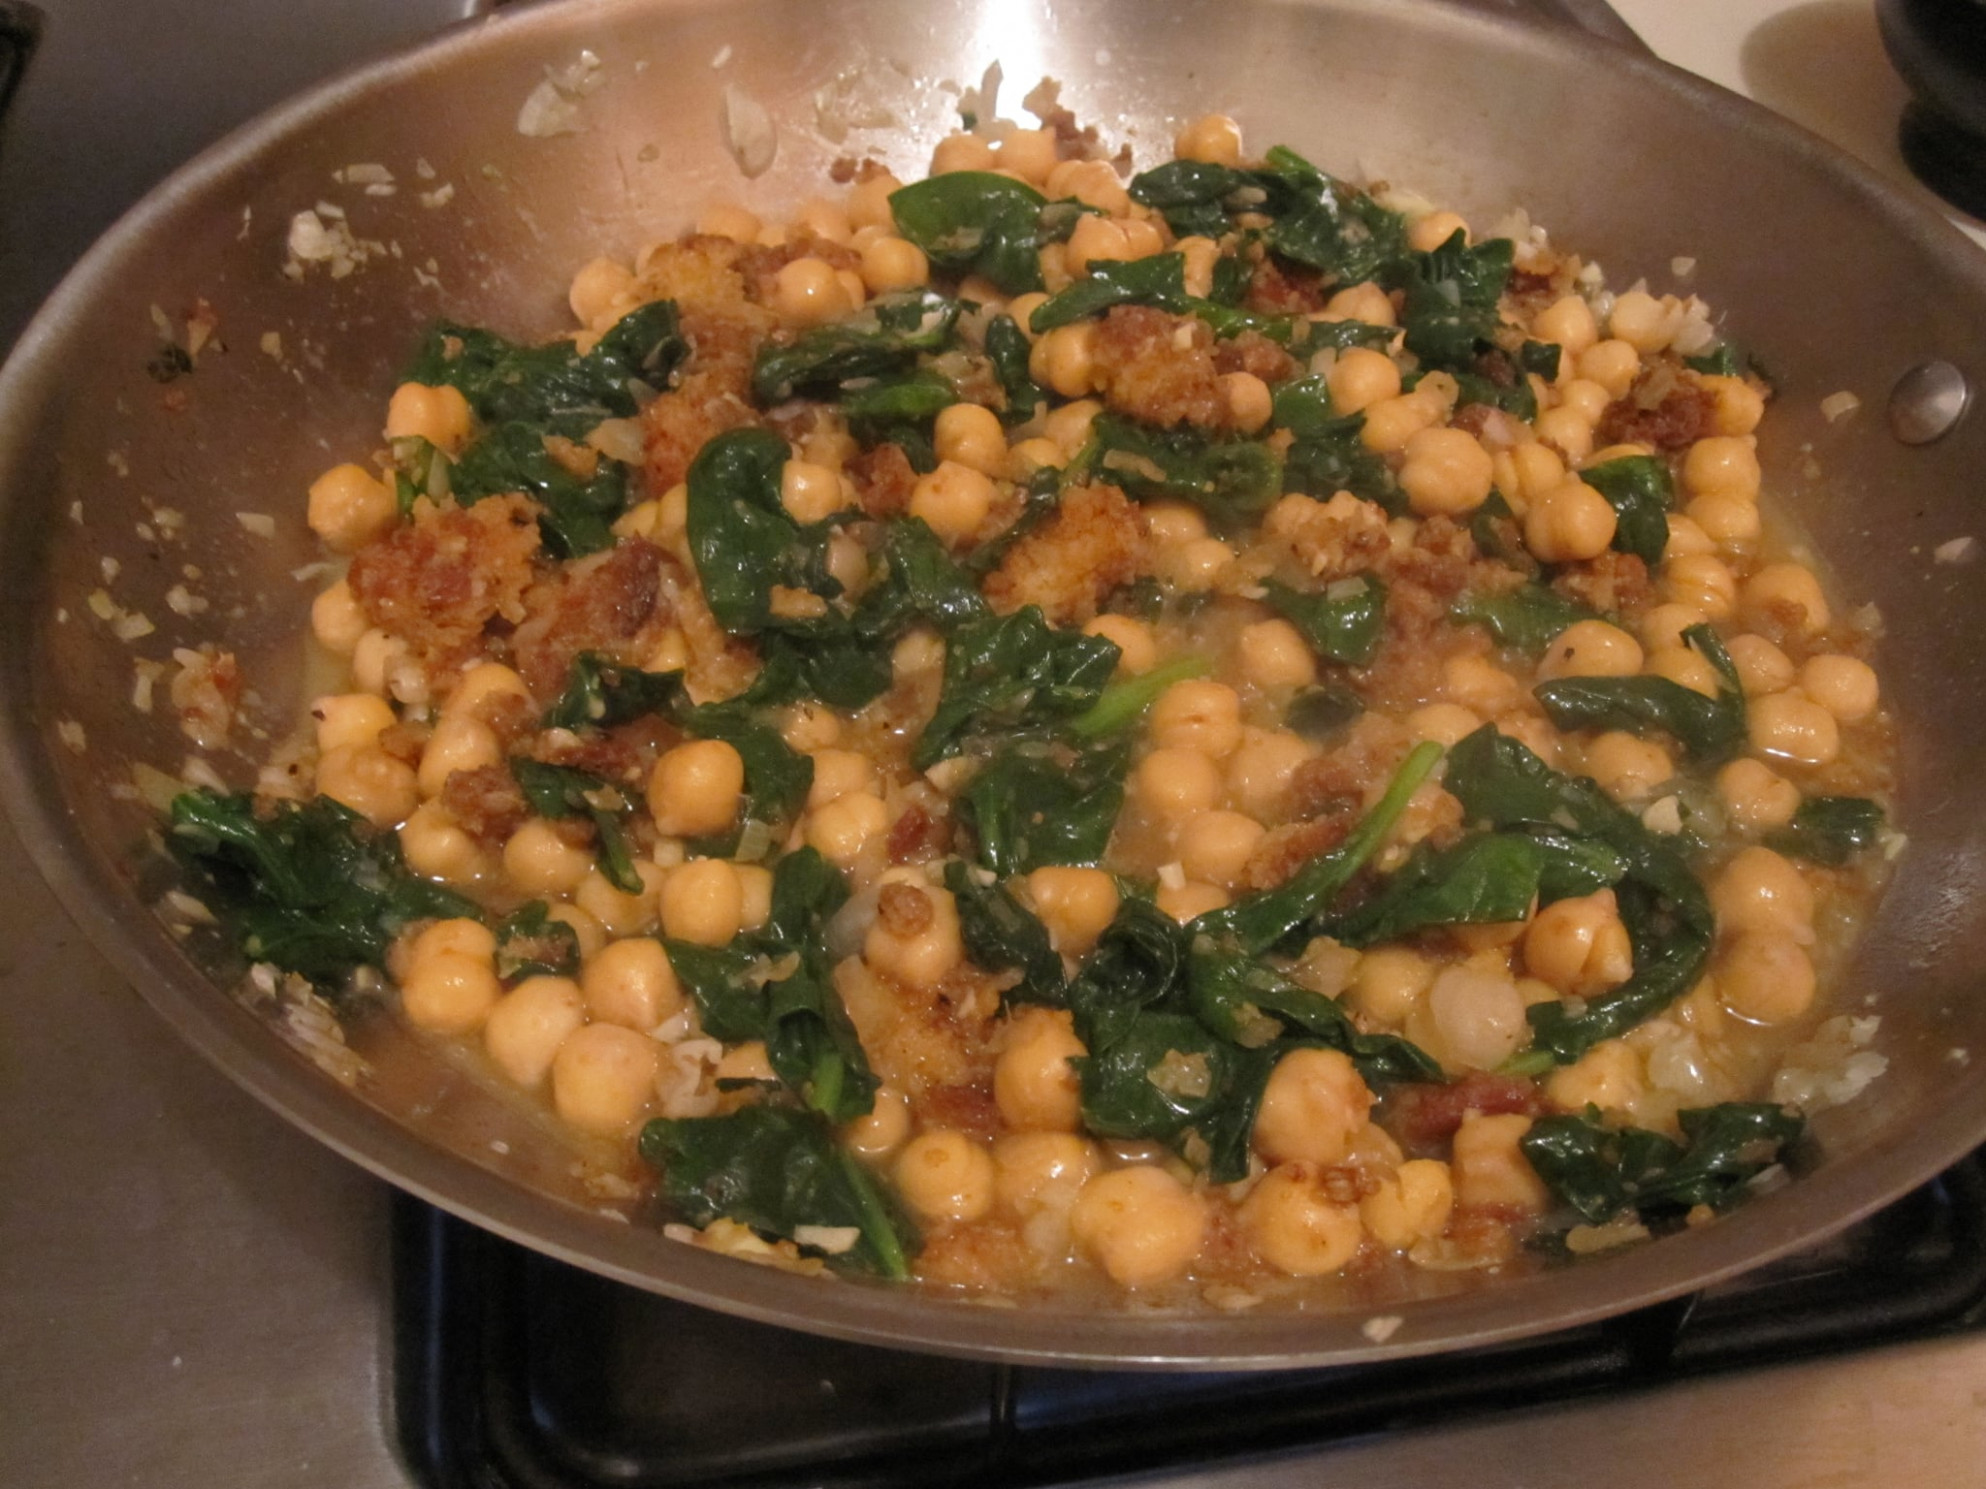 Spinach With Garbanzo Beans Recipe | POPSUGAR Food